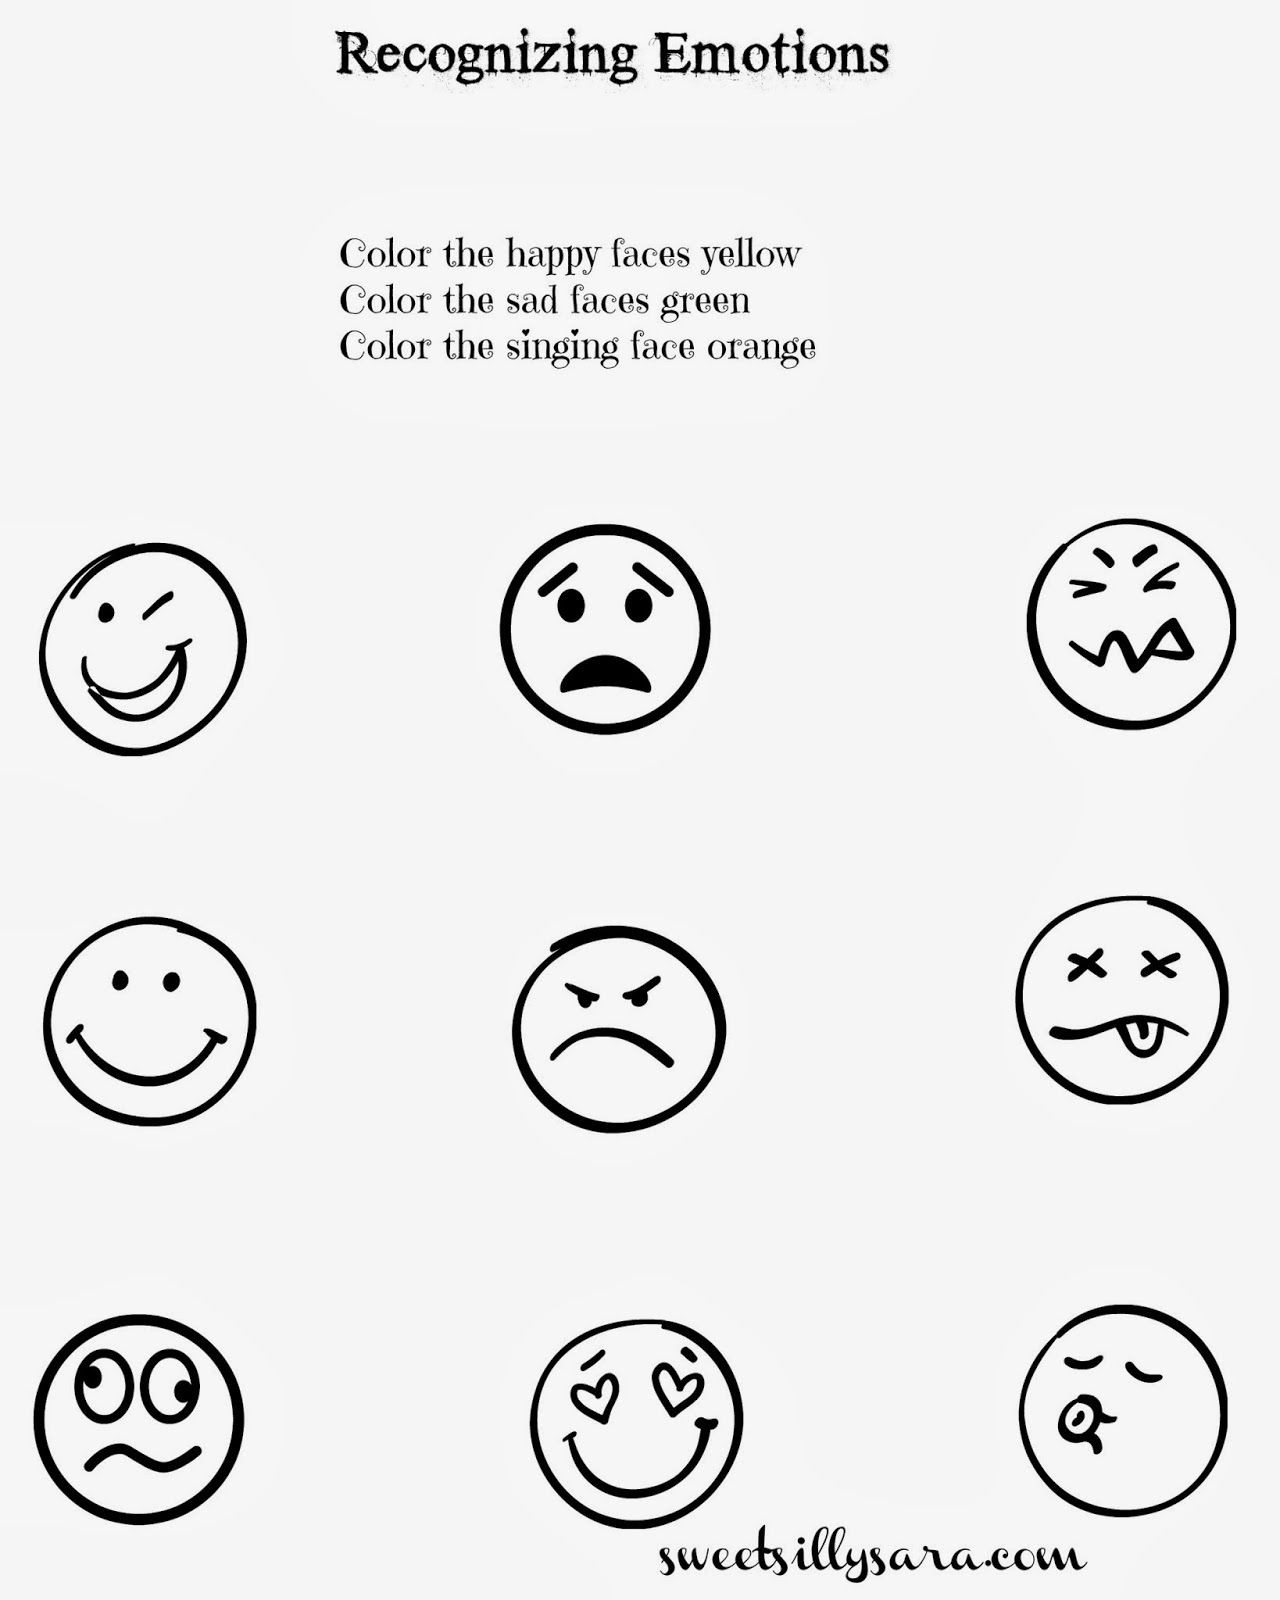 Emotions Worksheets for Preschoolers Sweet Silly Sara Recognizing Emotions Worksheet for Kids